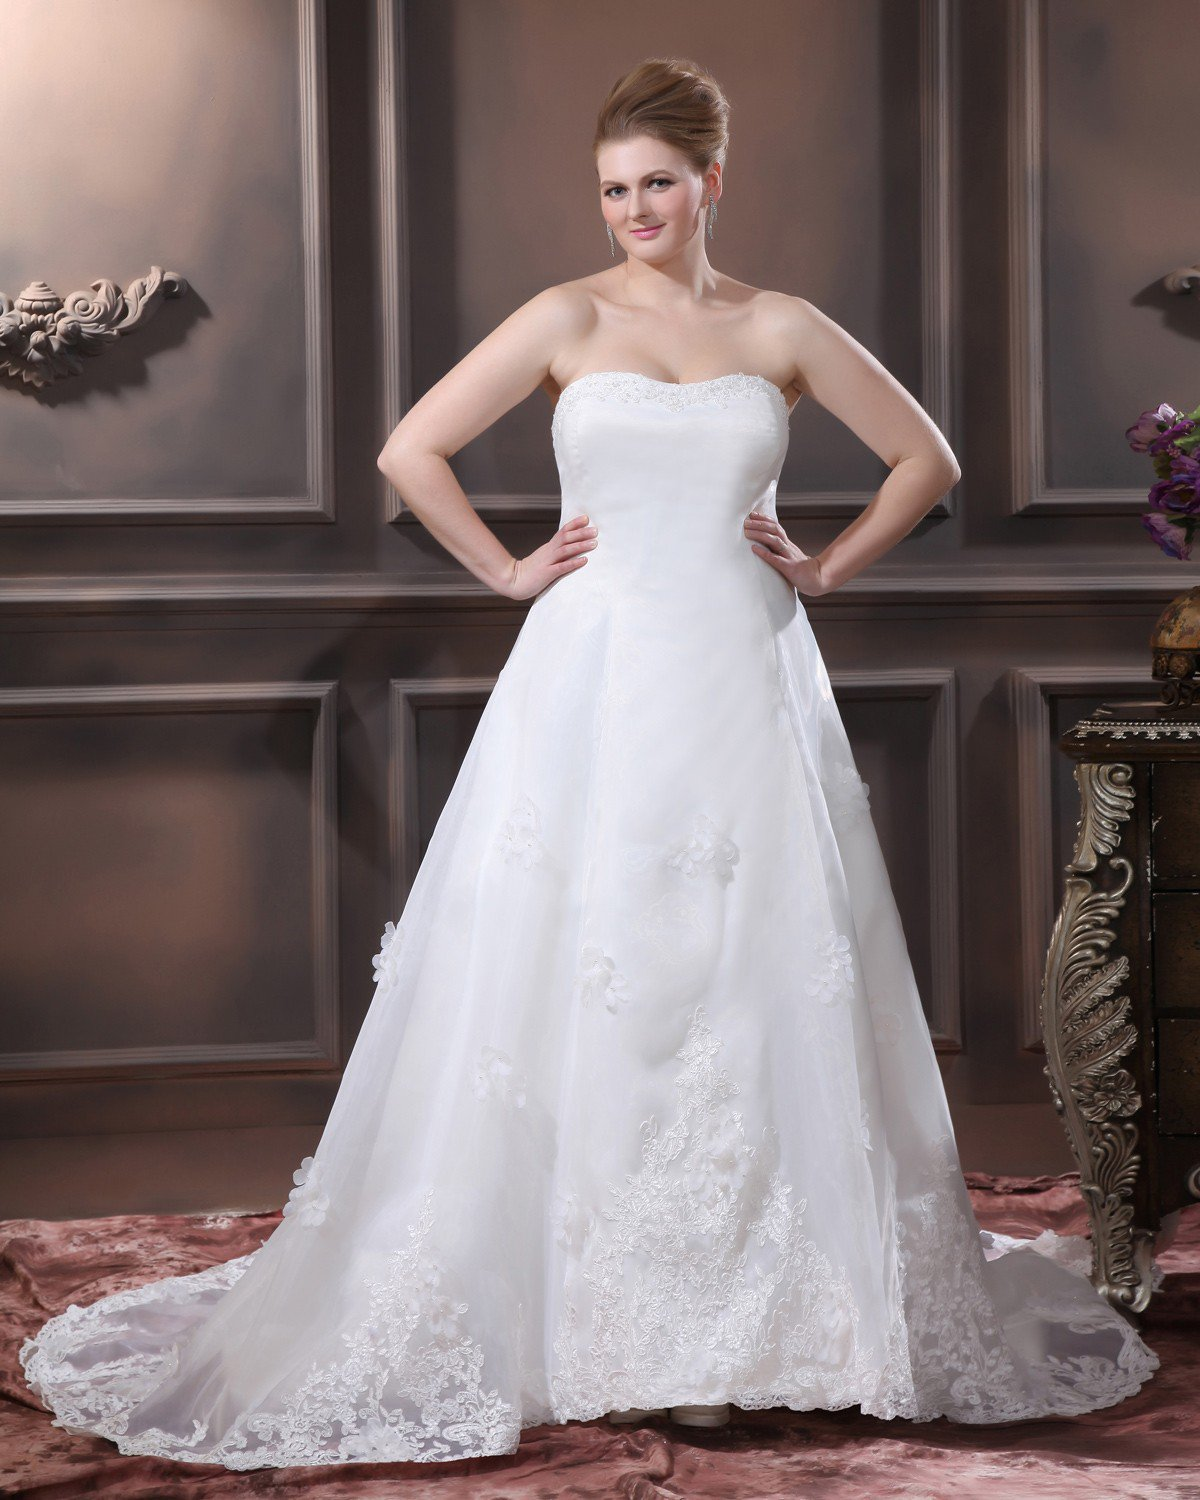 Satin Organza Beaded Applique Hand Flower Strapless Plus Size Bridal Gown Wedding Dresses